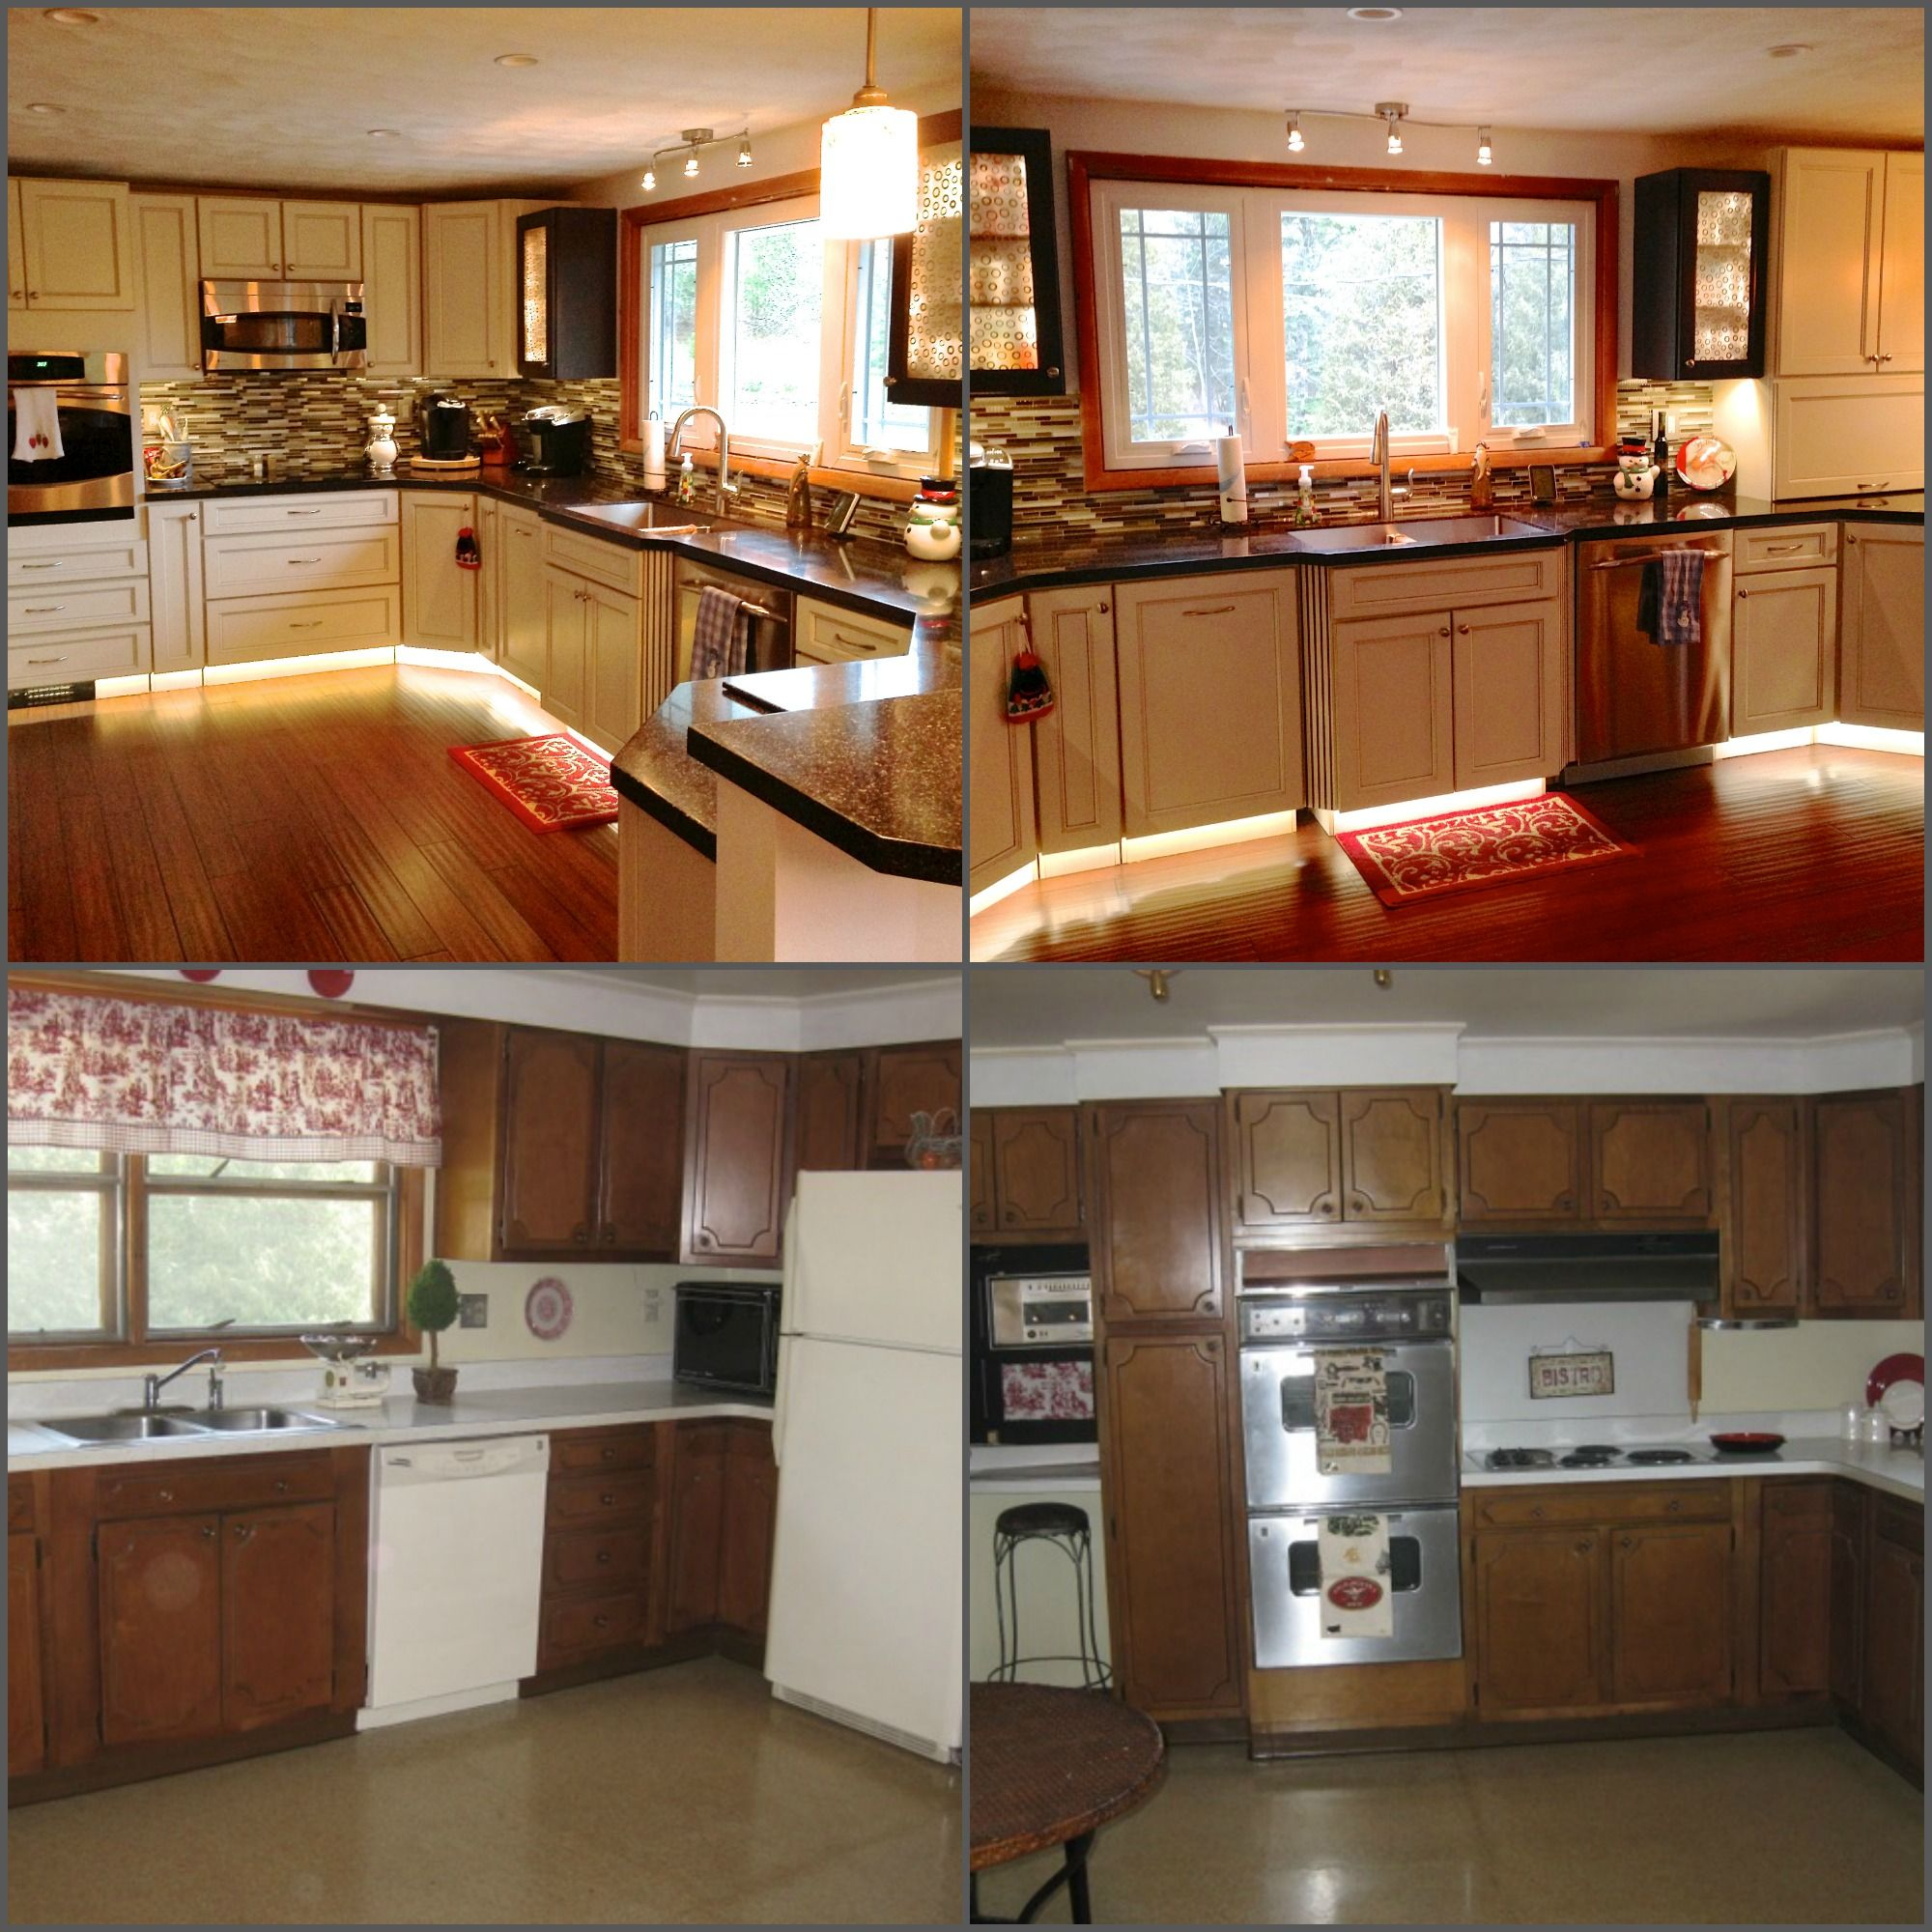 Home Kitchen Remodeling Model Beauteous The Most Amazing Mobile Home Renovationsyou Would Never Know . Design Inspiration